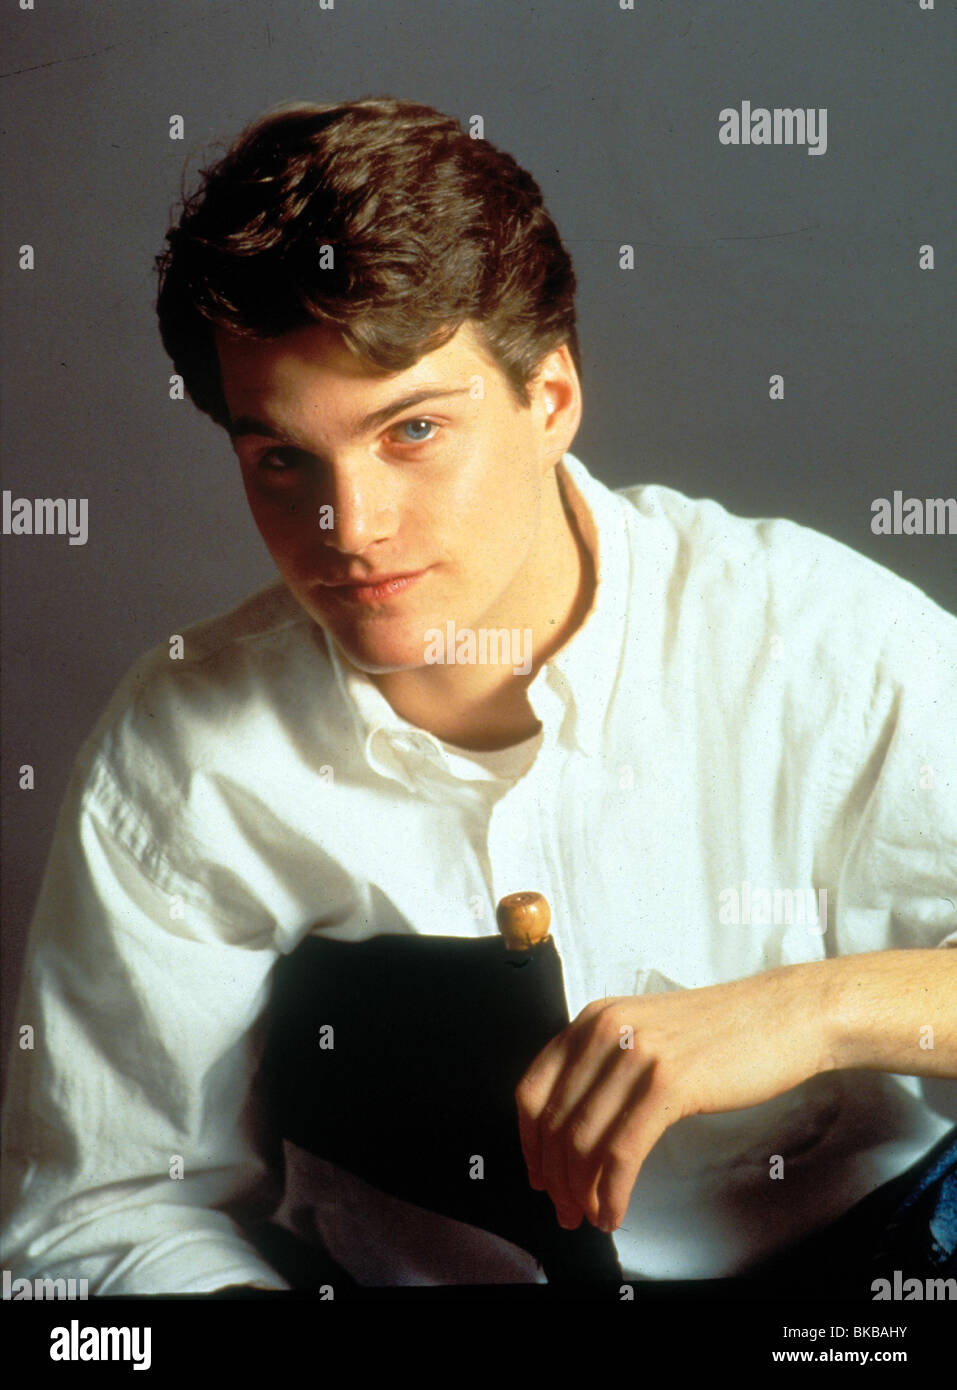 Scent Of A Woman 1992 Chris O Donnell Scw 039 Stock Photo Alamy